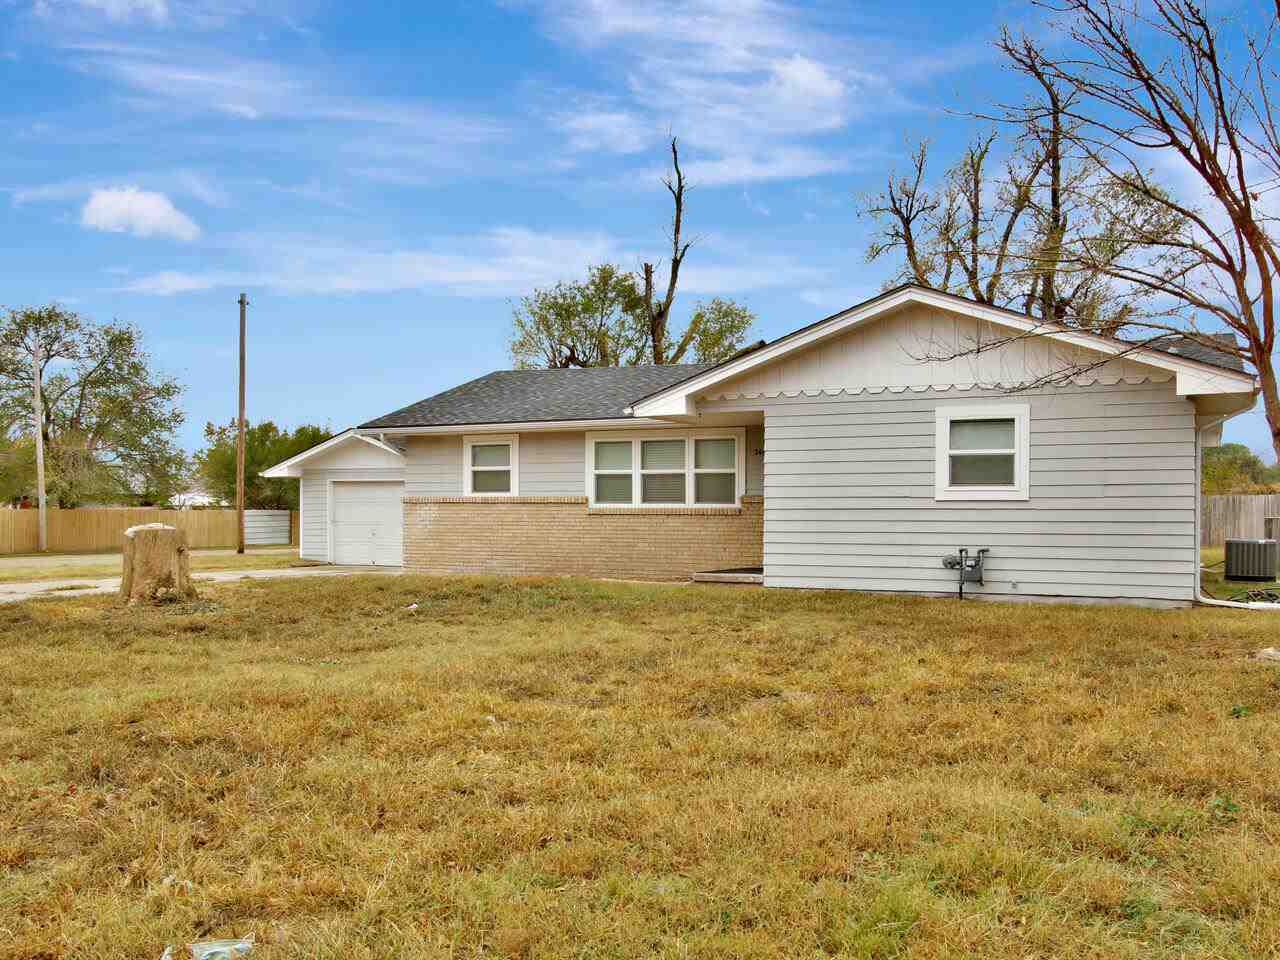 Move in ready home on a 1/2 acre lot in west Wichita! Nicely updated 4 bedroom home with large rooms